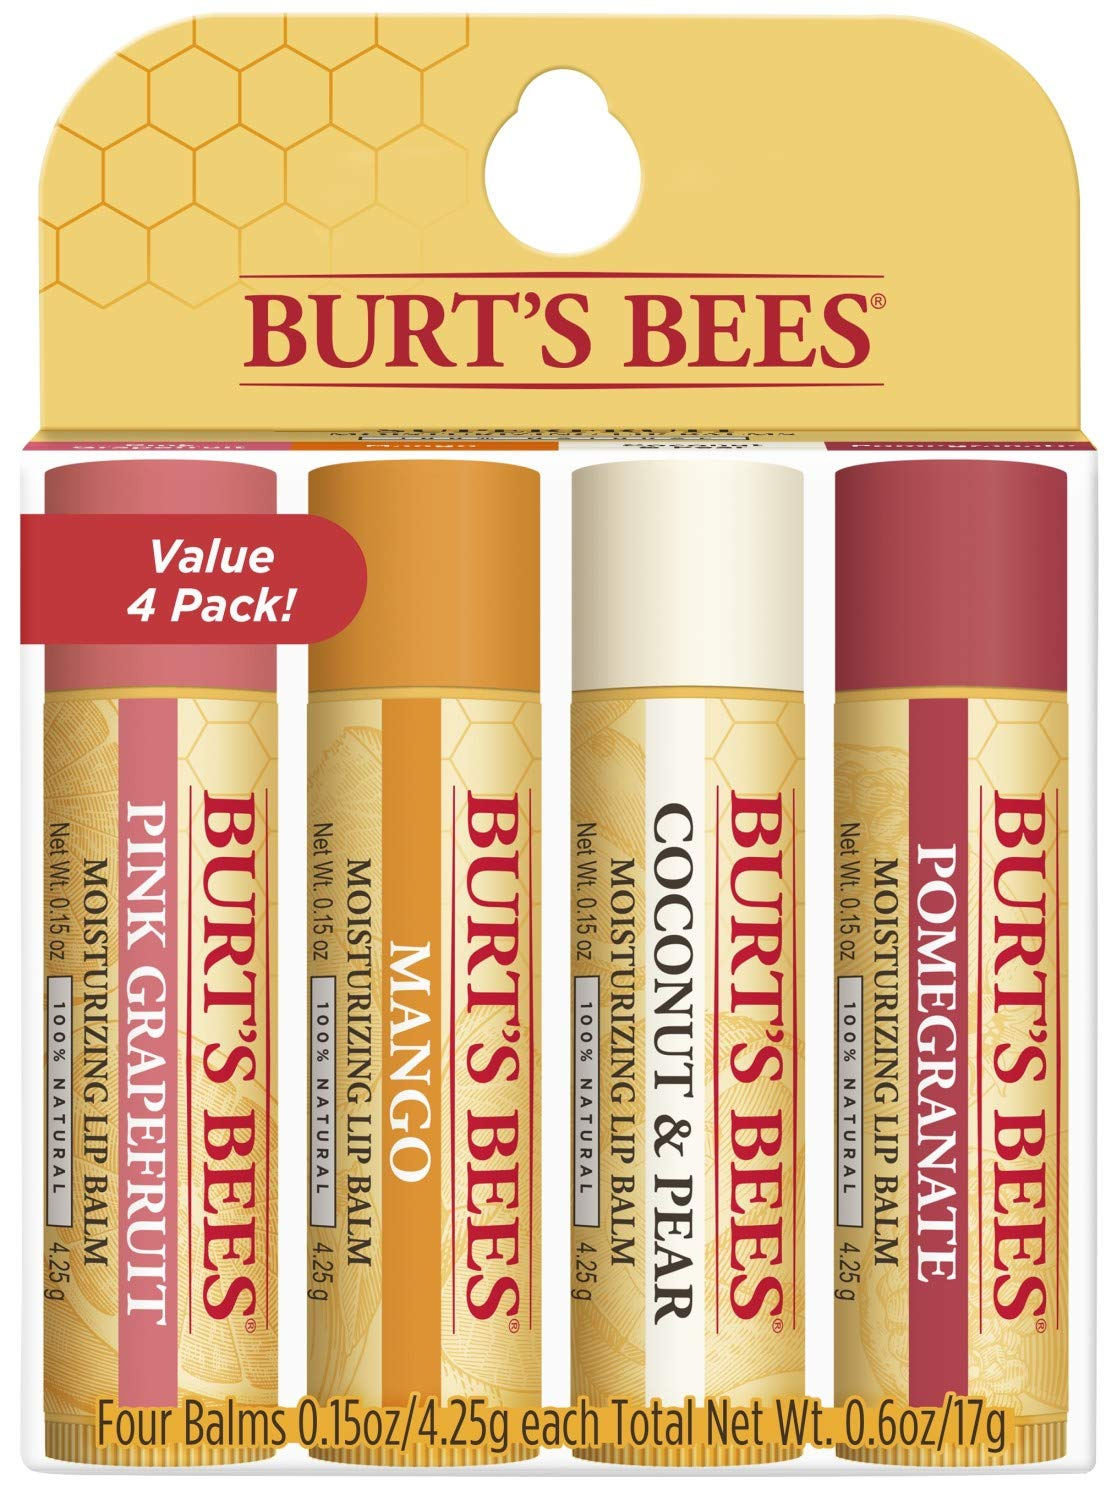 Burt's Bees 100% Natural Moisturizing Lip Balm, Superfruit - Pink Grapefruit, Mango, Coconut & Pear, Pomegranate - 4 Tubes : Beauty